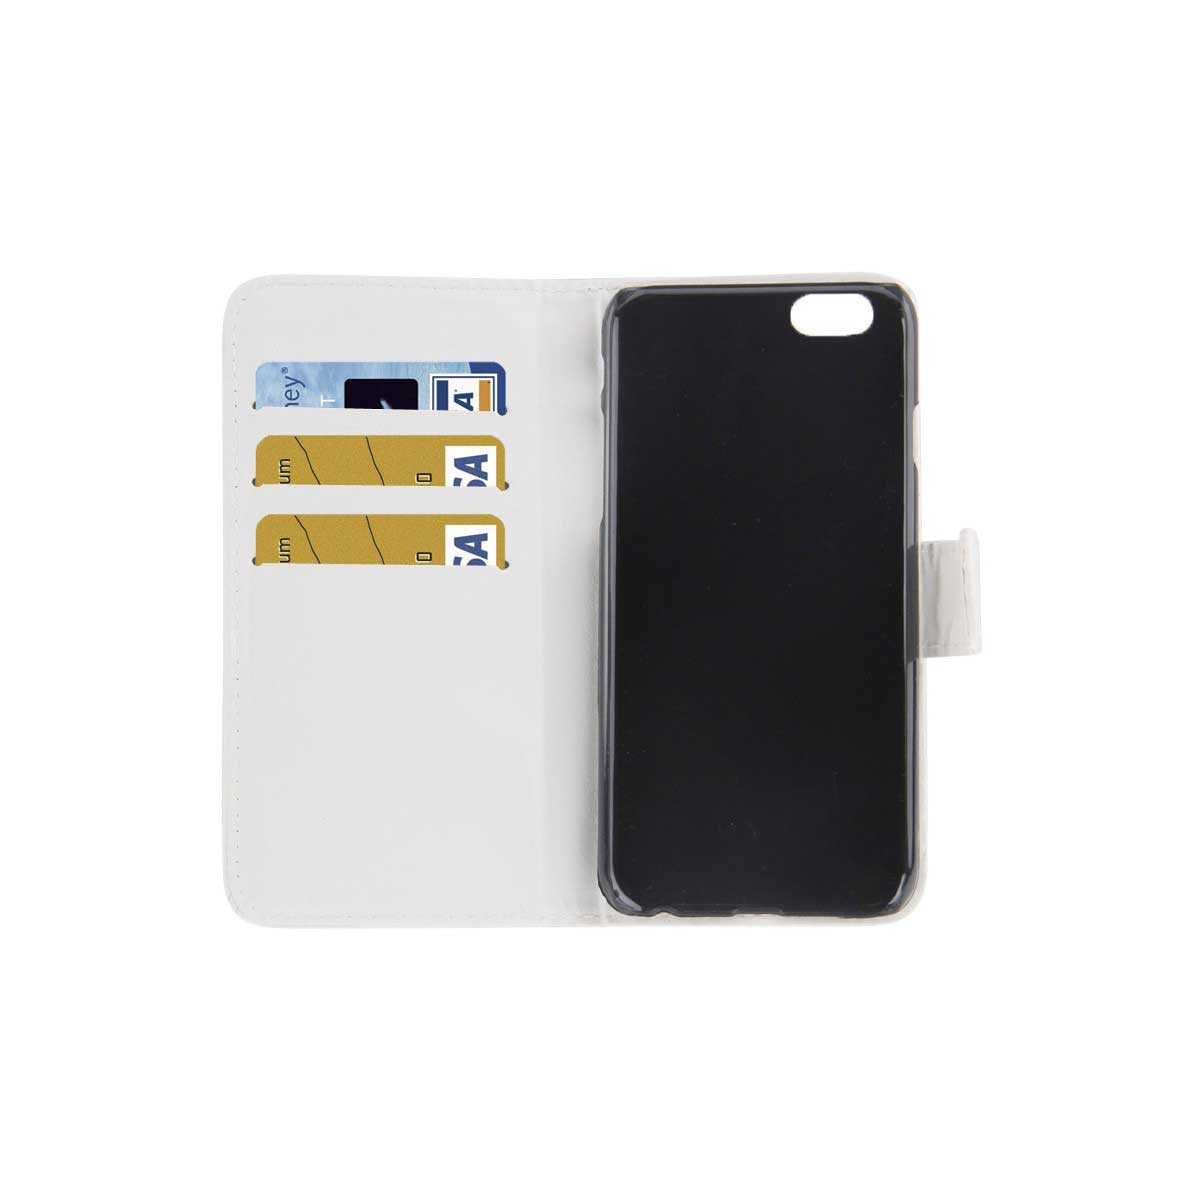 sheepskin-texture-horizontal-flip-magnetic-button-leather-case-with-card-slot-holder-for-iphone-6-plus-white-(2)